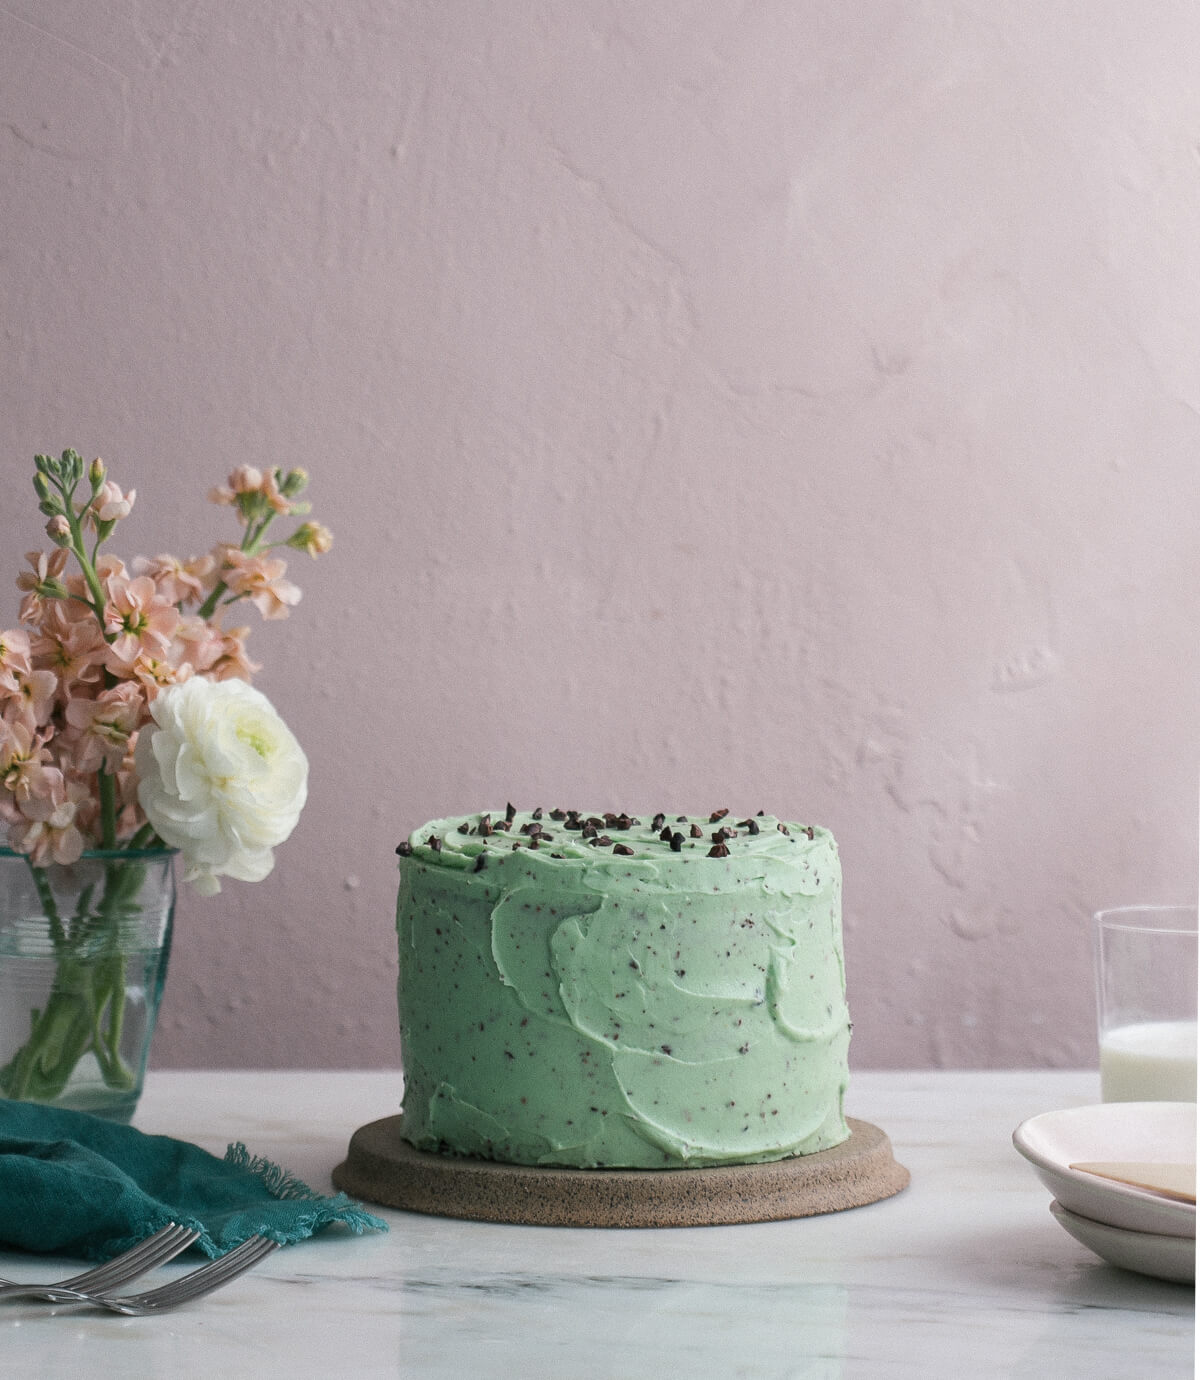 Mint Chocolate Chip Cake A Cozy Kitchen